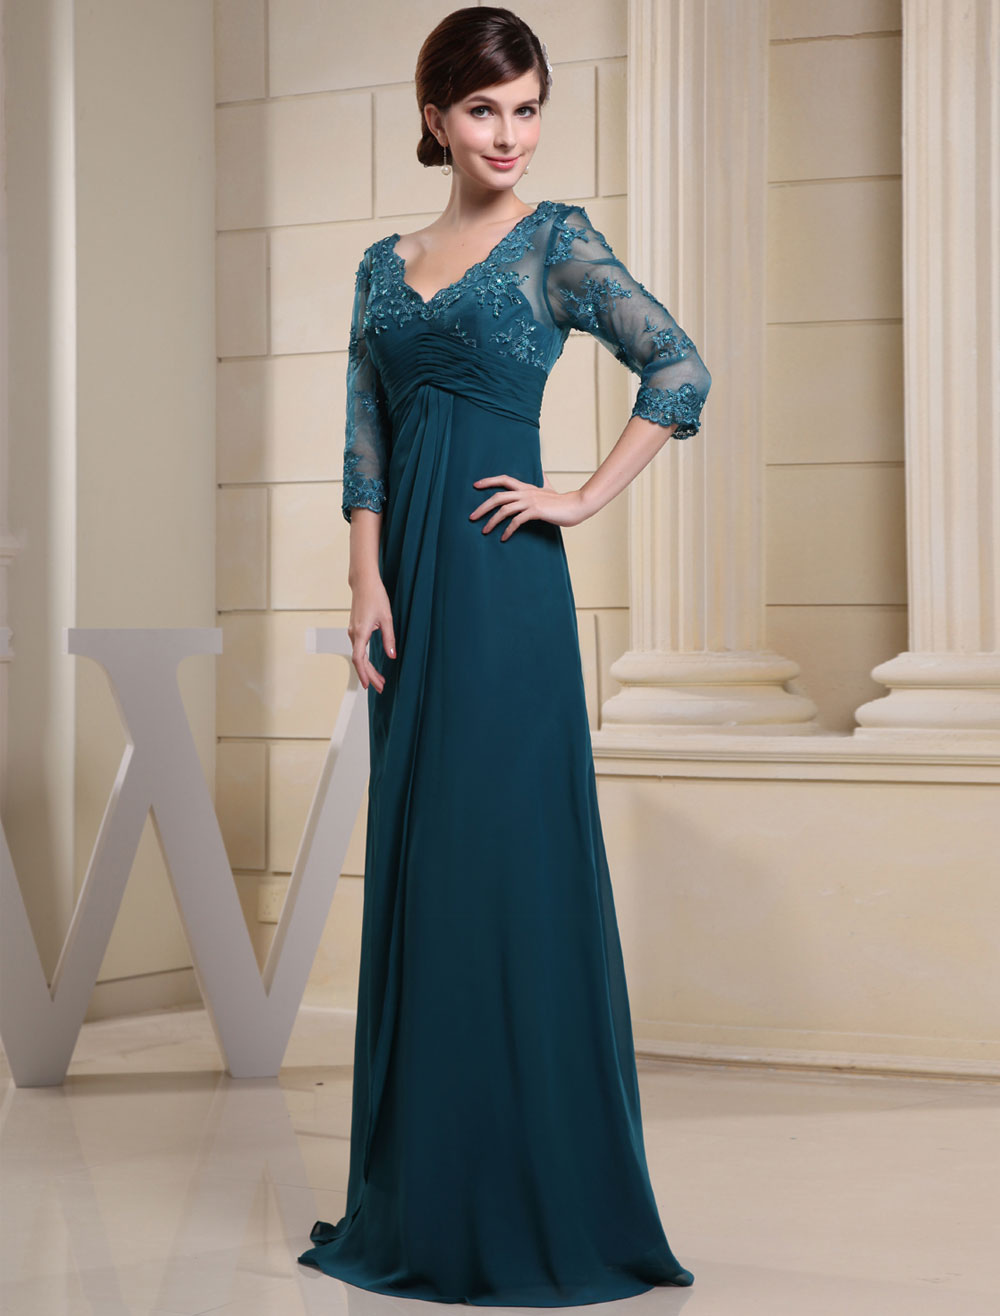 Ink Blue Evening Dress Lace Applique Beading V Neck Half Sleeves A Line Wedding Party Dress